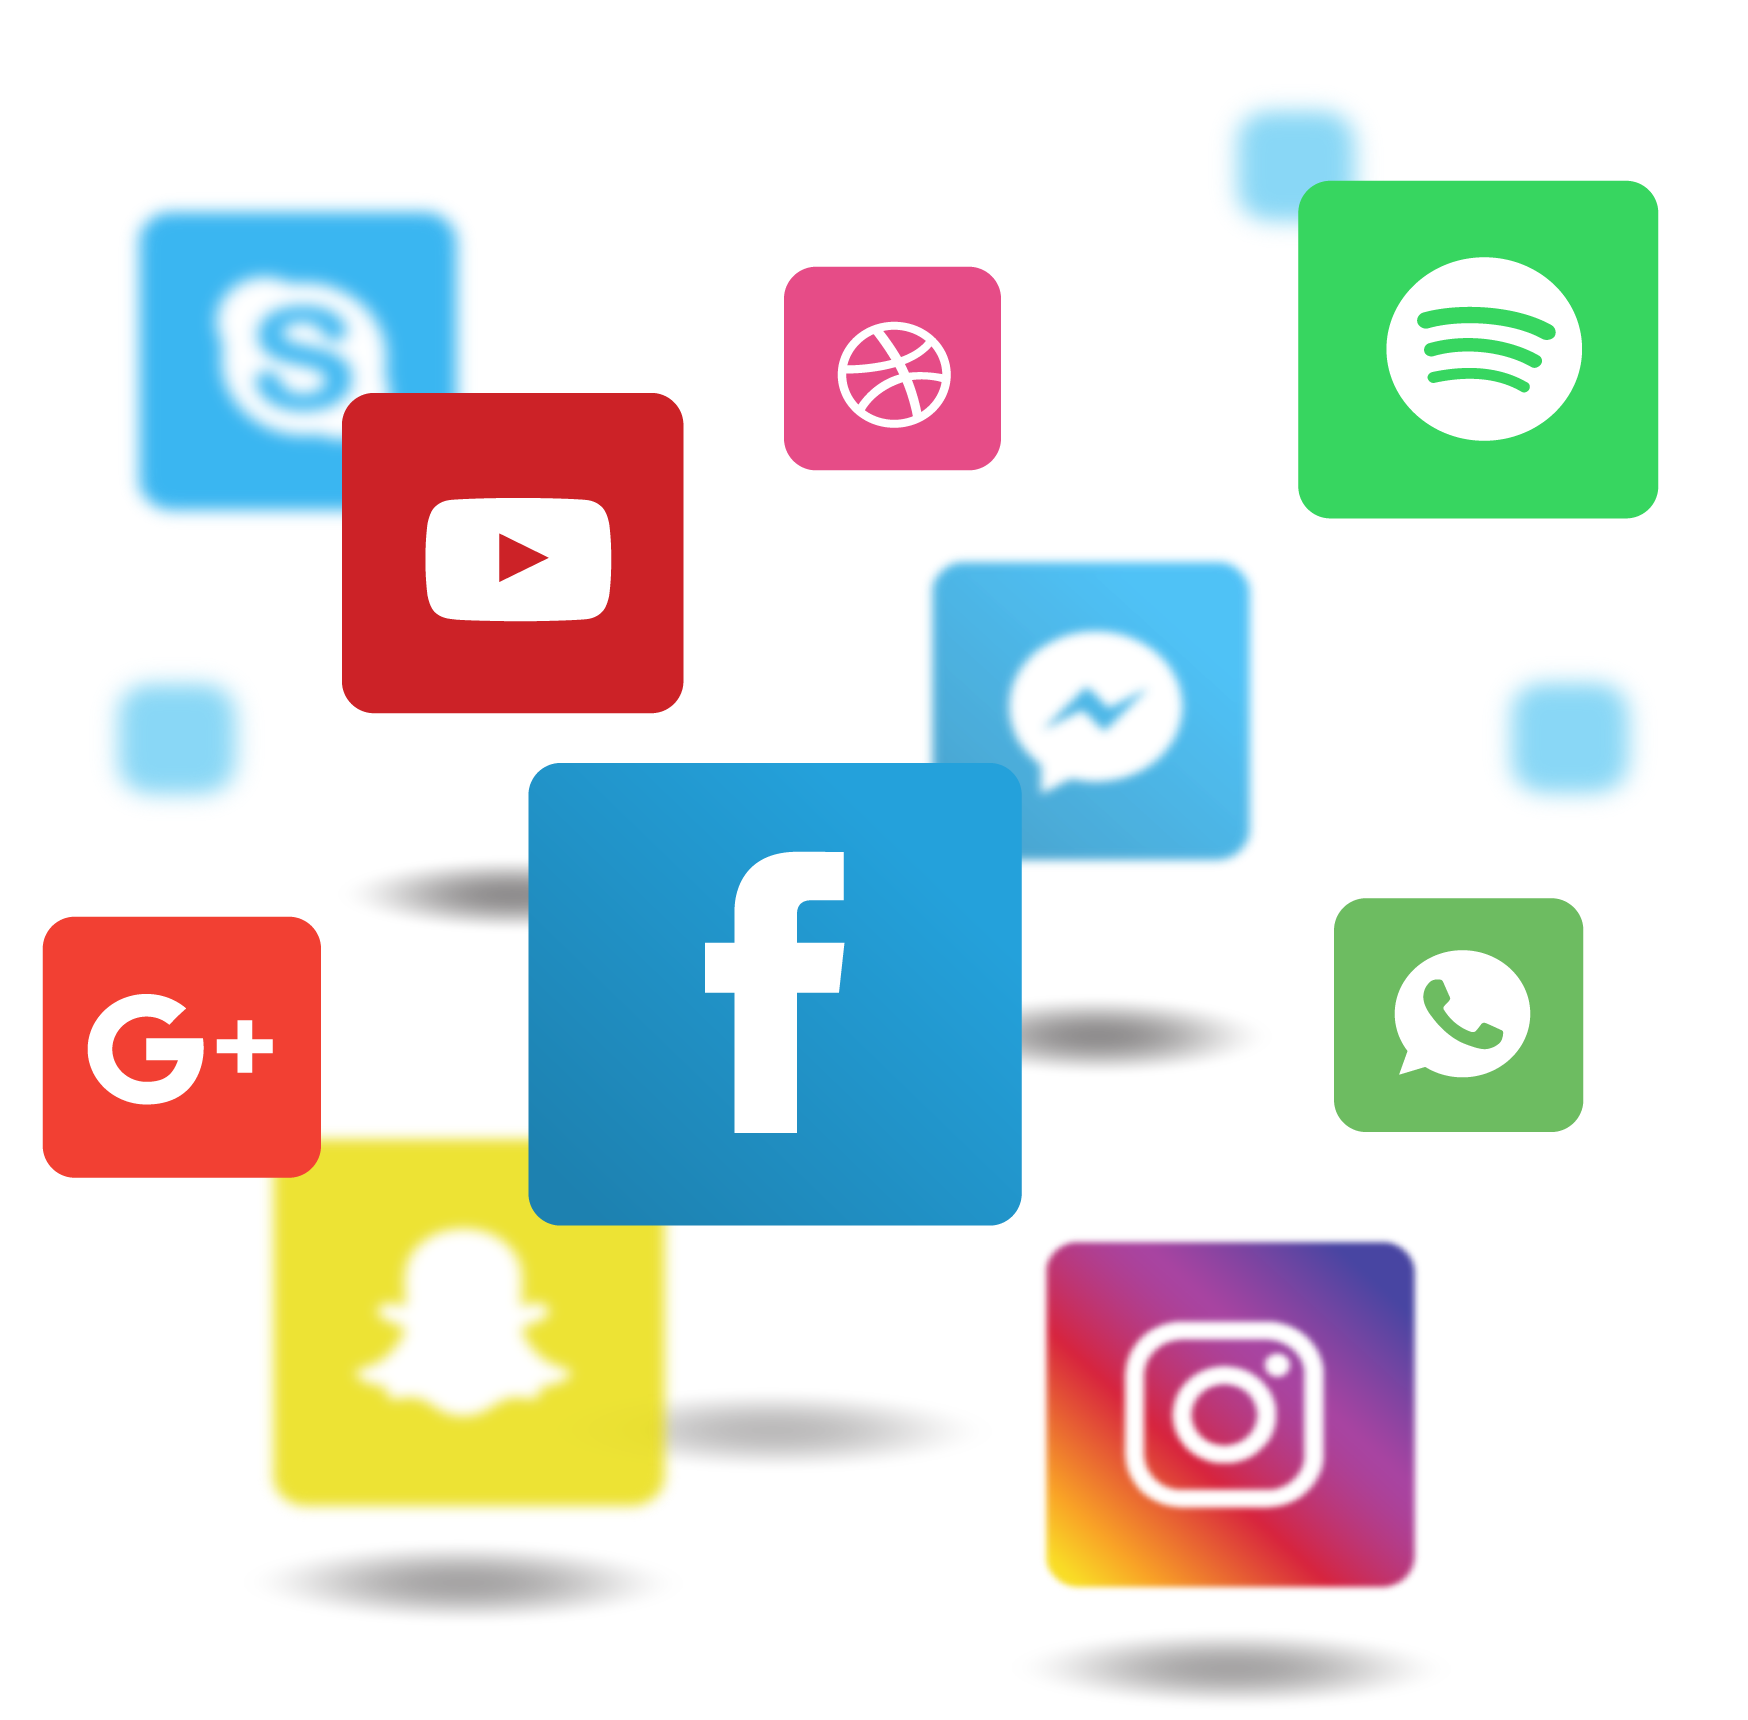 Applications Media Communicatiemiddel Application Social Icon Software PNG Image